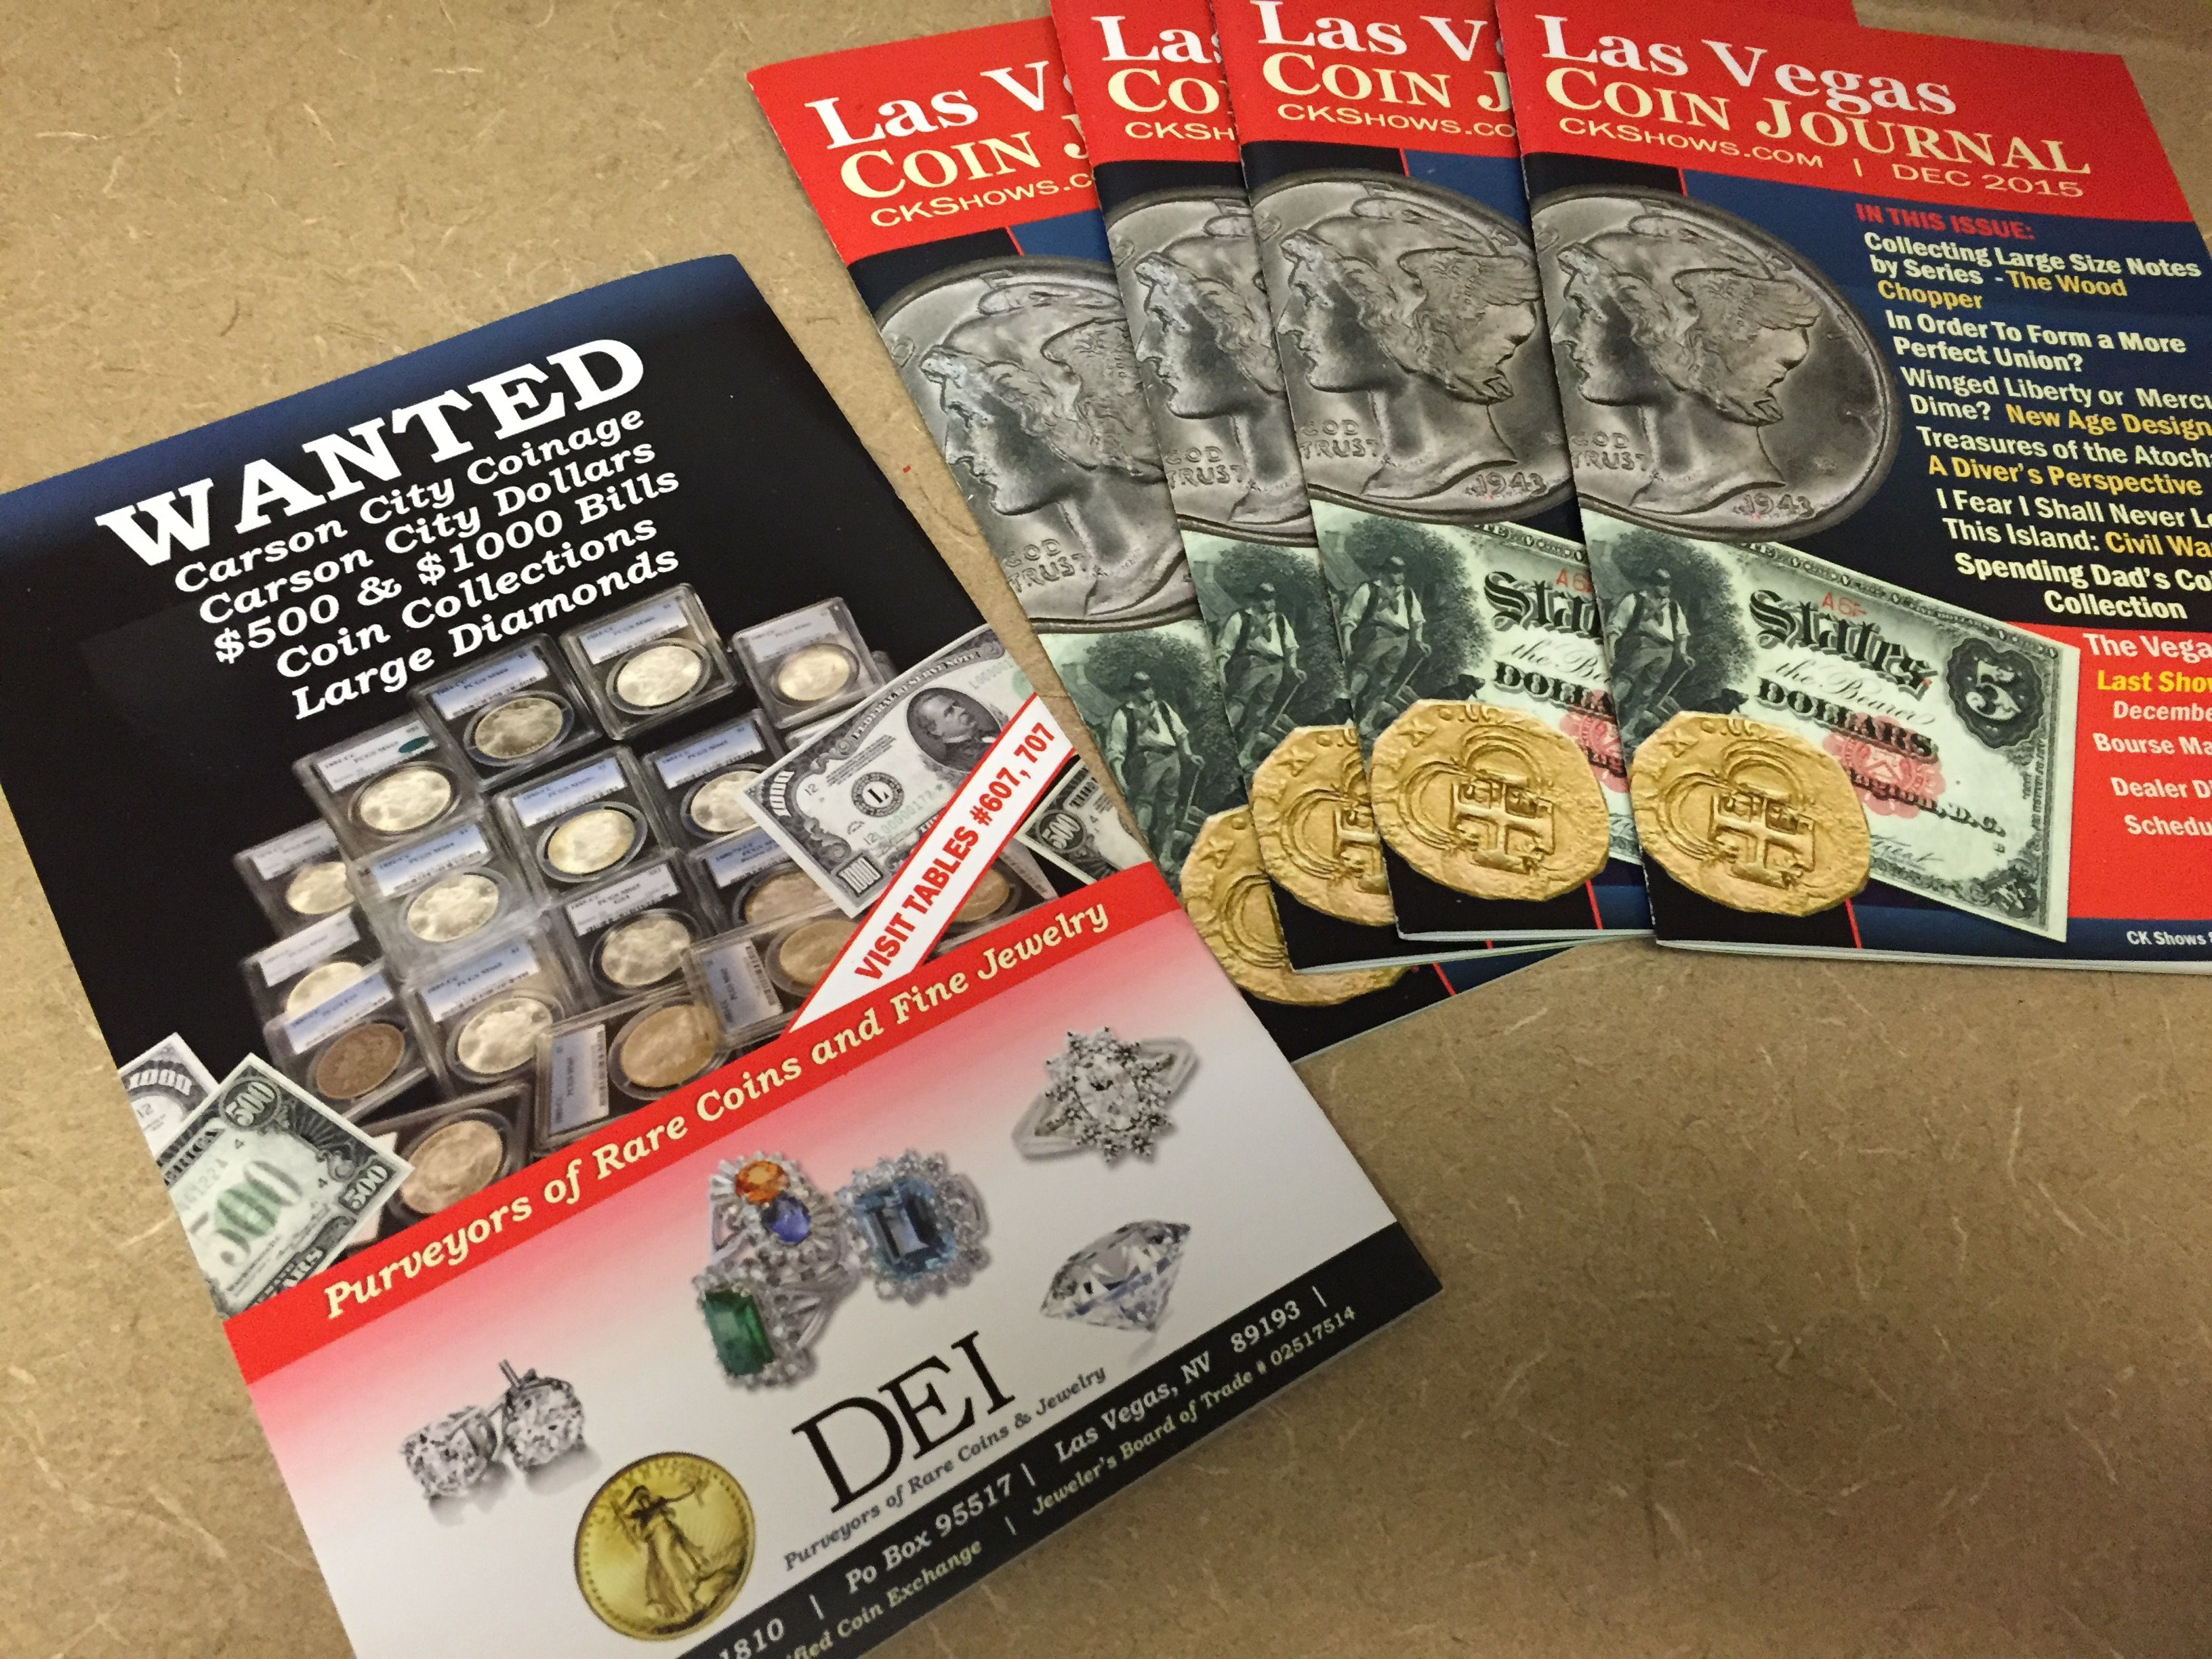 36+ Las vegas jewelry and coin exchange viral